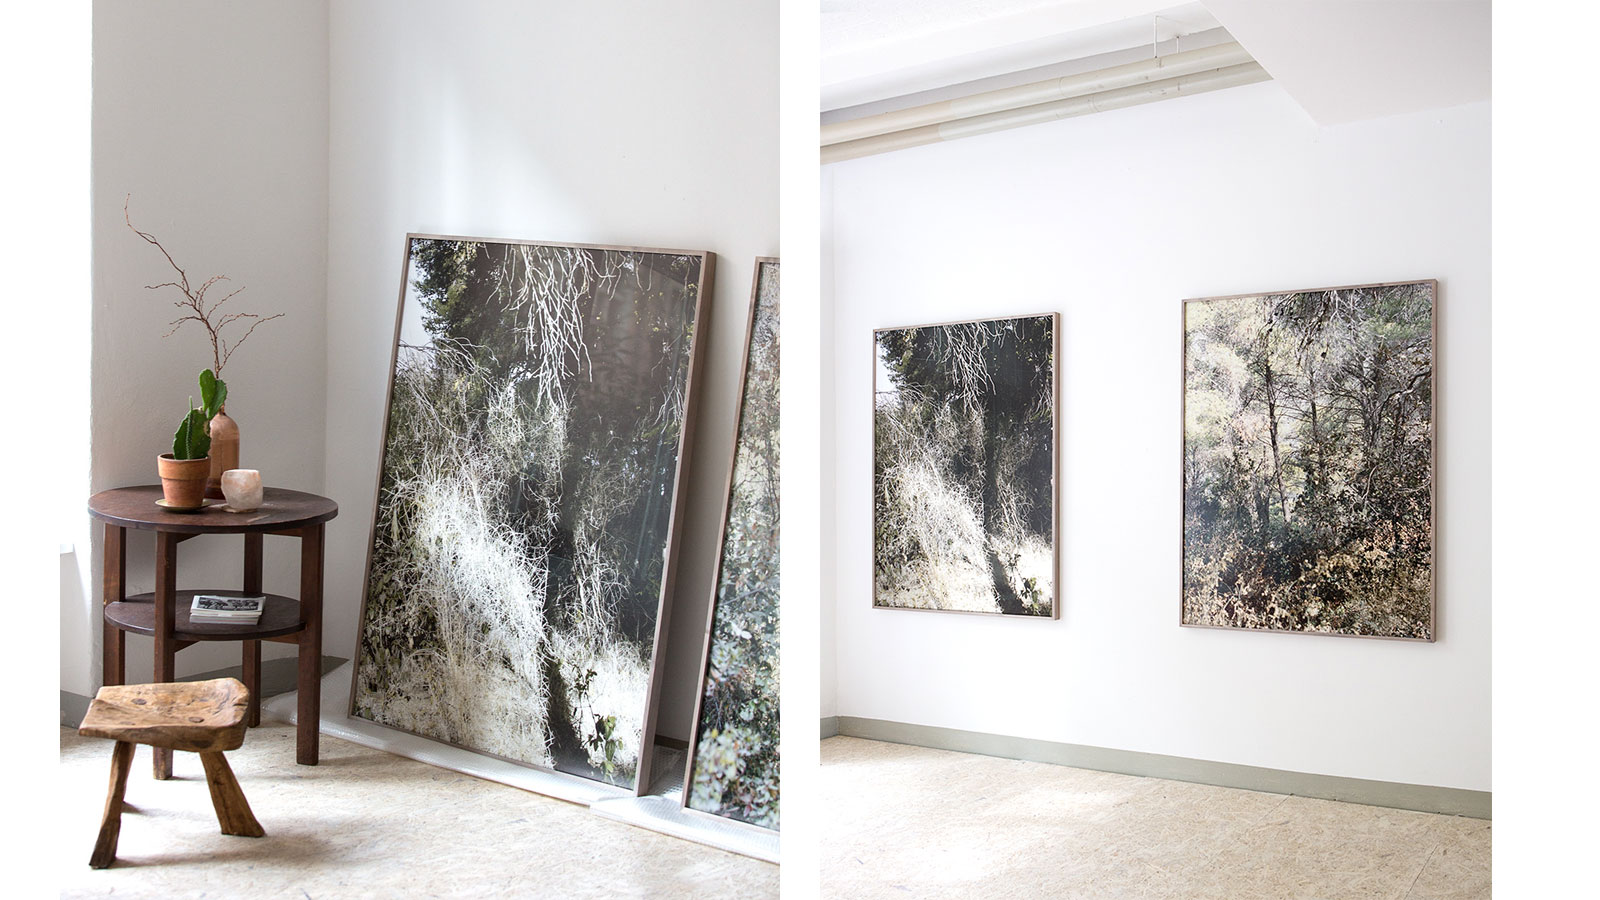 Studio Views, Untitled (7), 2018, And Untitled (3), 2017. Fine Art Prints, 100 X 133 Cm, Framed, Museum Glass © Mirjana Vrbaški